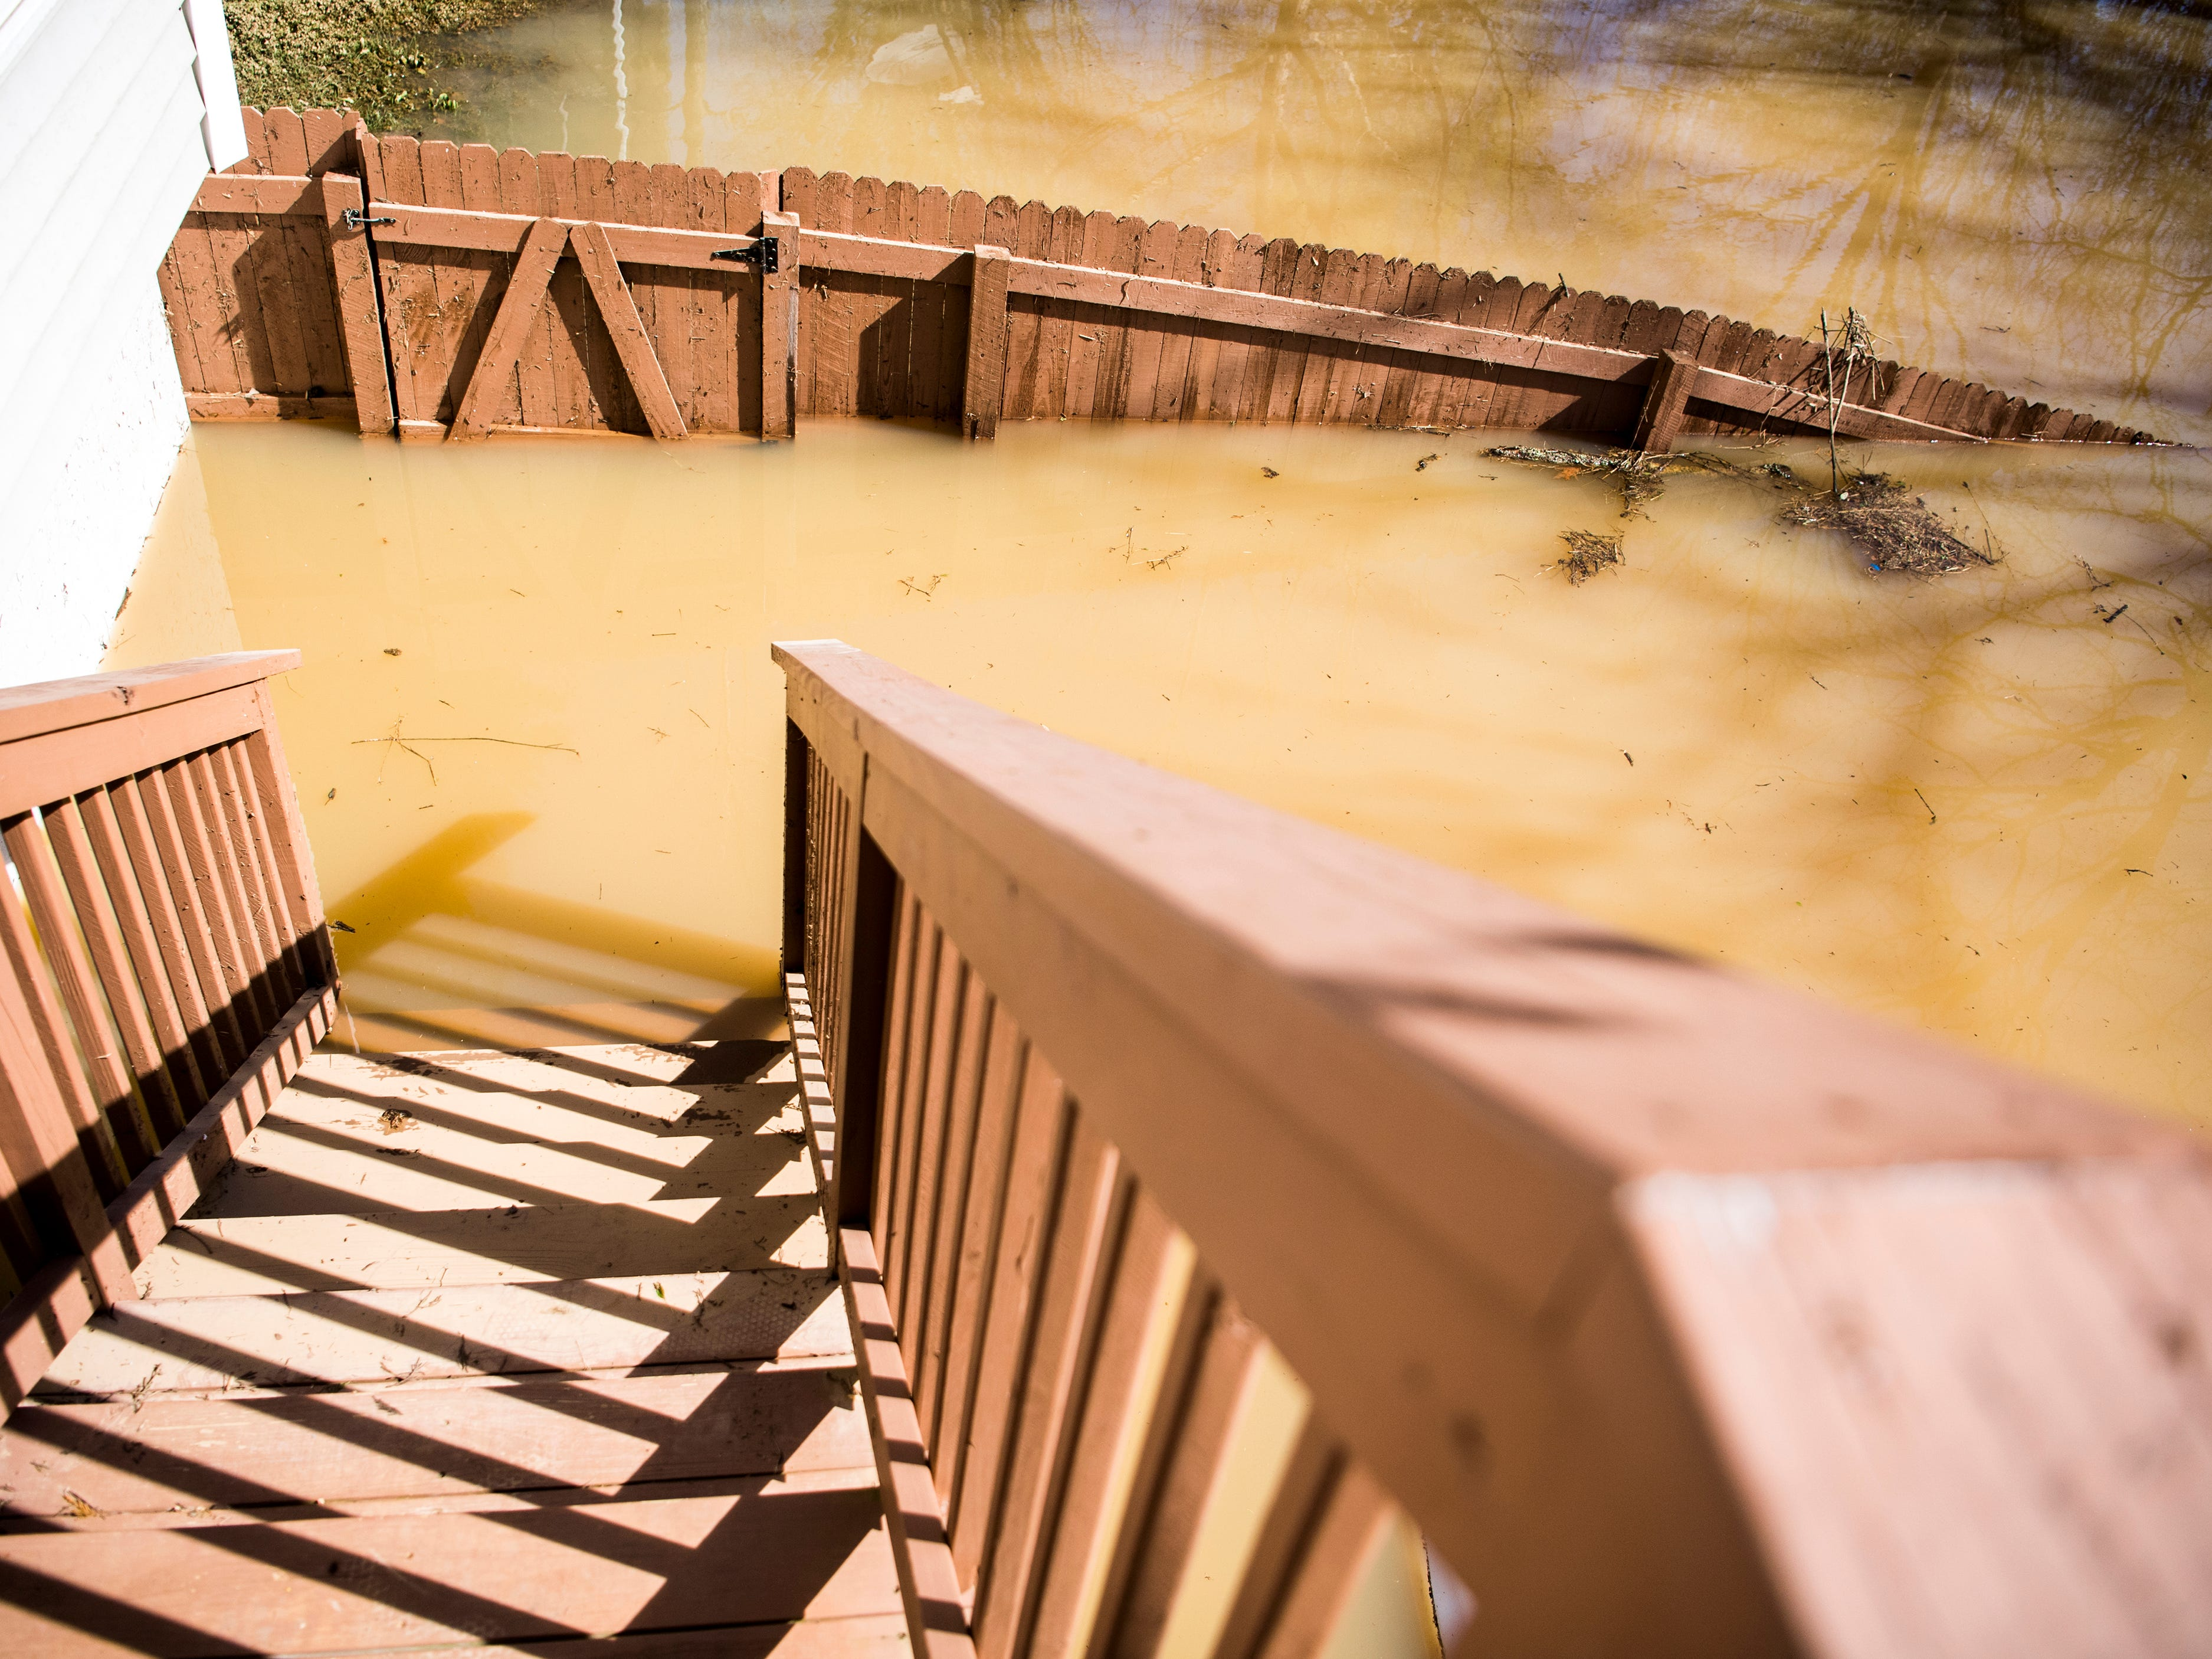 Water continues to flood Jeff Macklin's backyard on Monday, February 25, 2019. Macklin lives in the Lennox Place subdivision off of Ebenezer Road in Knoxville, and parts of Ebenezer Road were still under several feet of water on Monday afternoon.